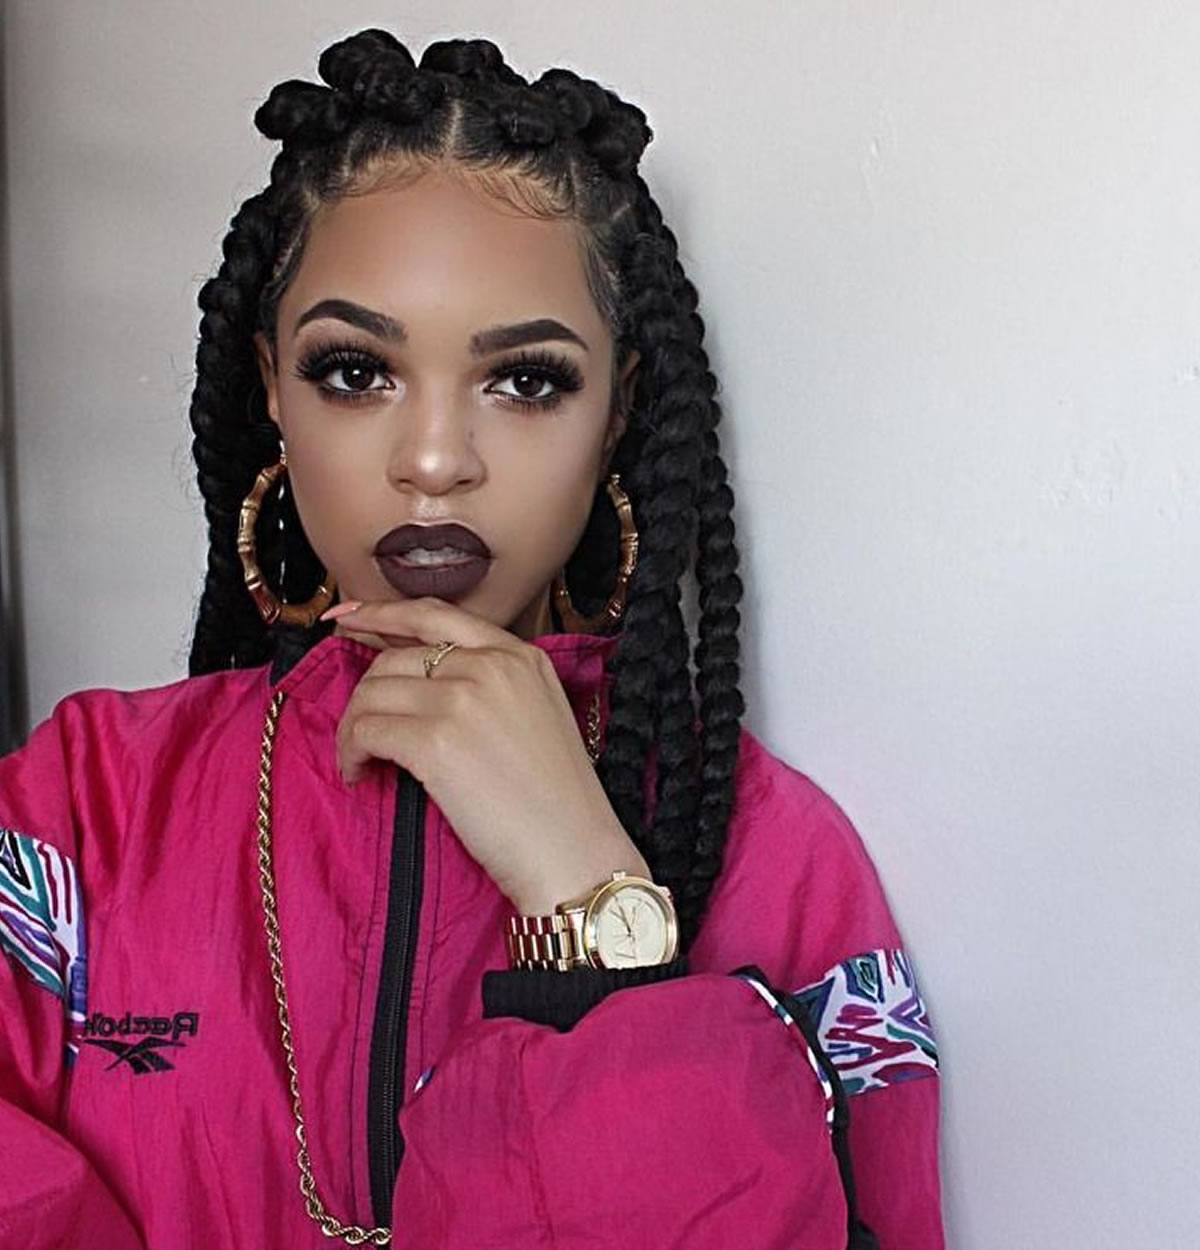 Short, Medium And Long Hair Ideas & Hairstyles For Black Women 2018 Throughout Current Medium Haircuts Black Women (Gallery 10 of 20)